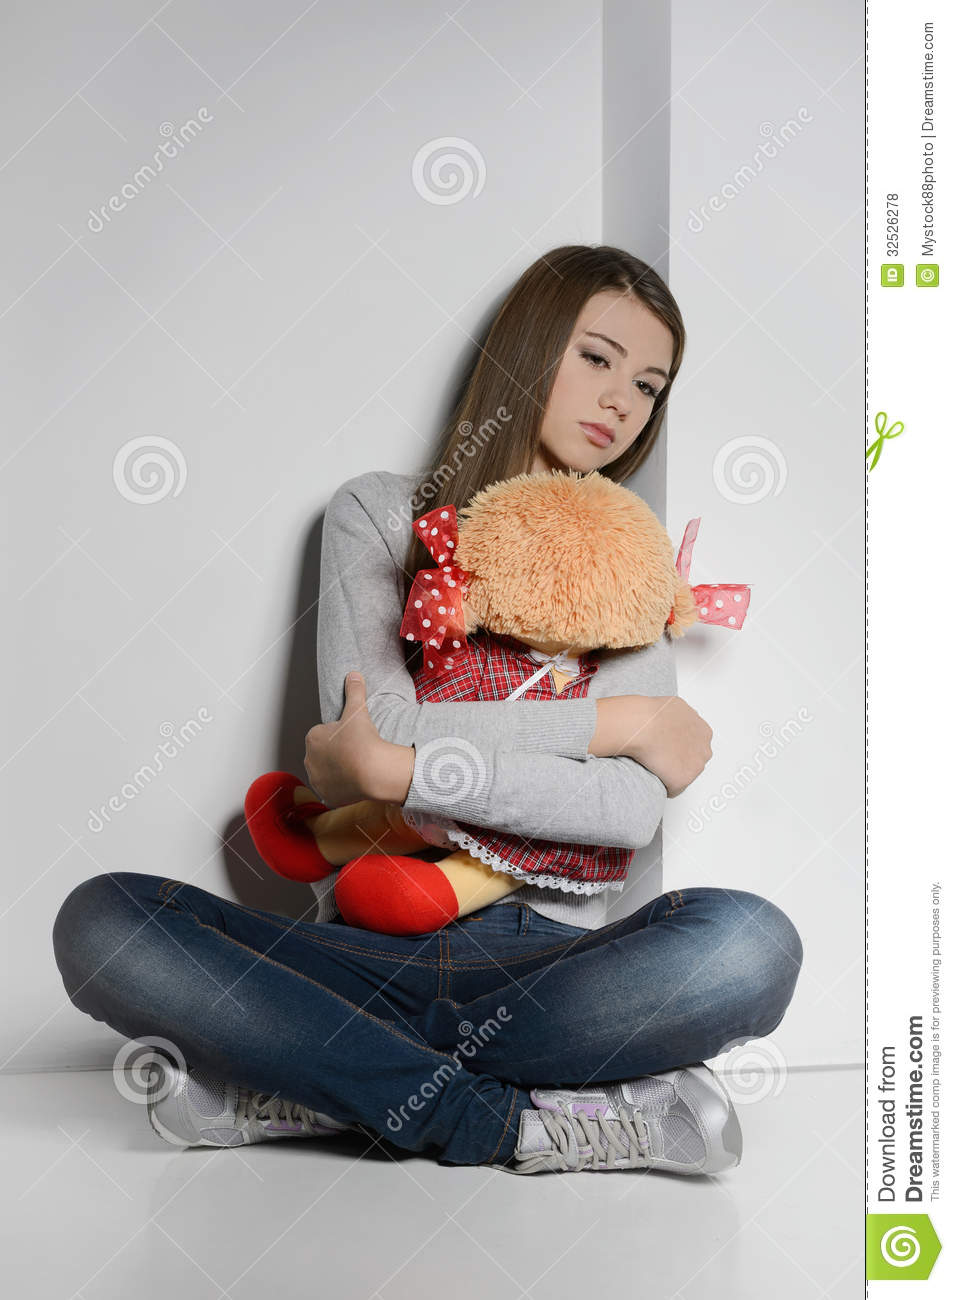 A Girl Sitting Alone Wallpapers Lonely Teenage Girl Sad Teenage Girl Sitting On The Floor